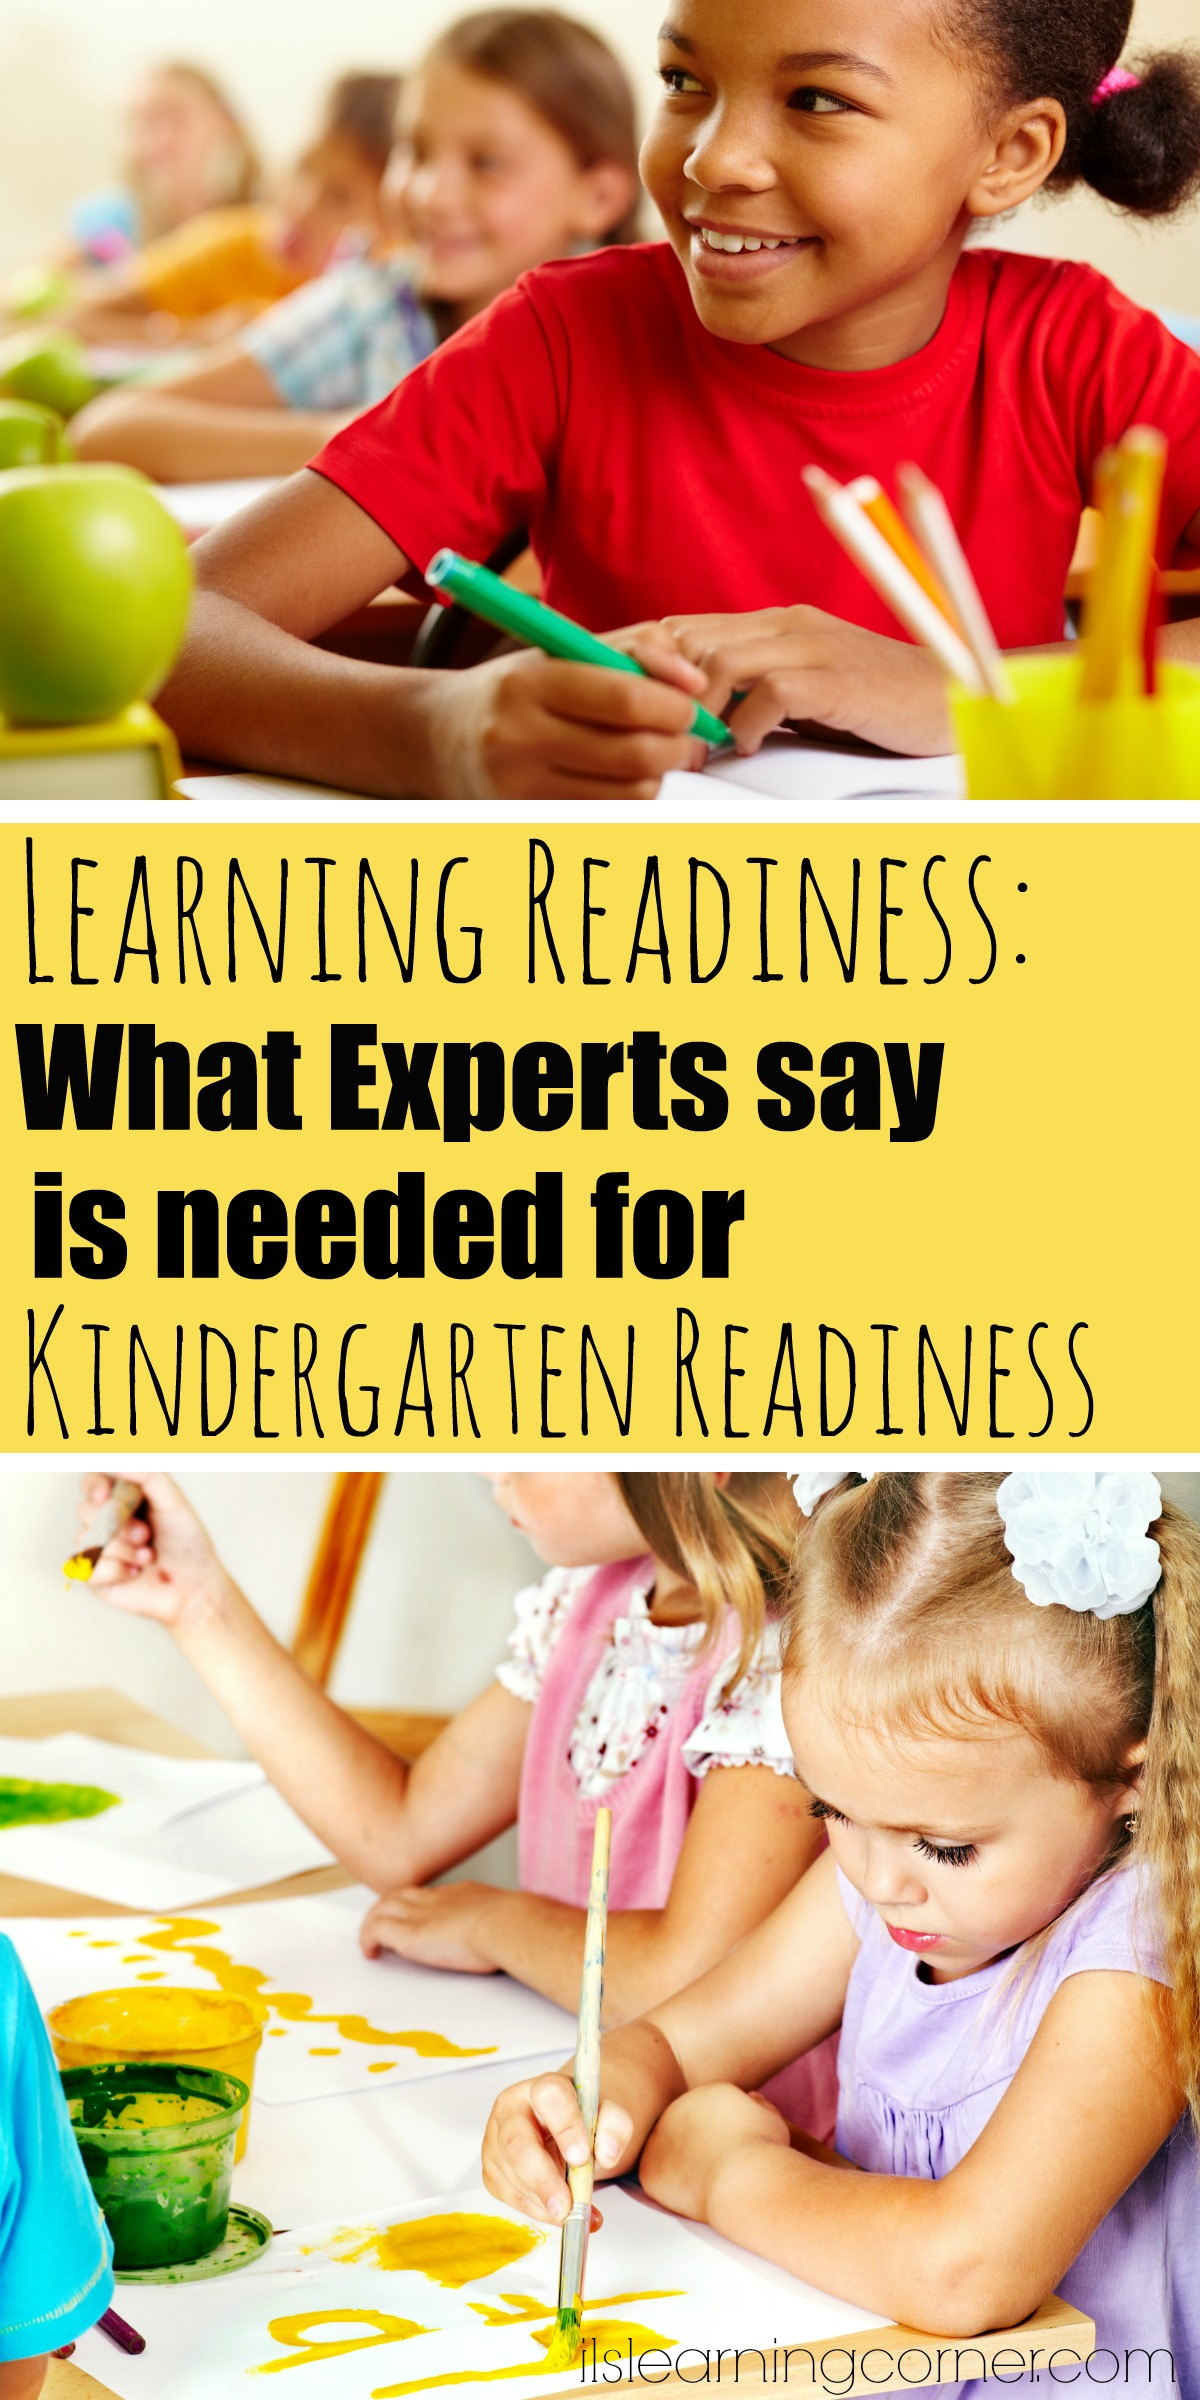 Kinder Garden: IS MY CHILD READY FOR LEARNING? What Experts Say Is Really